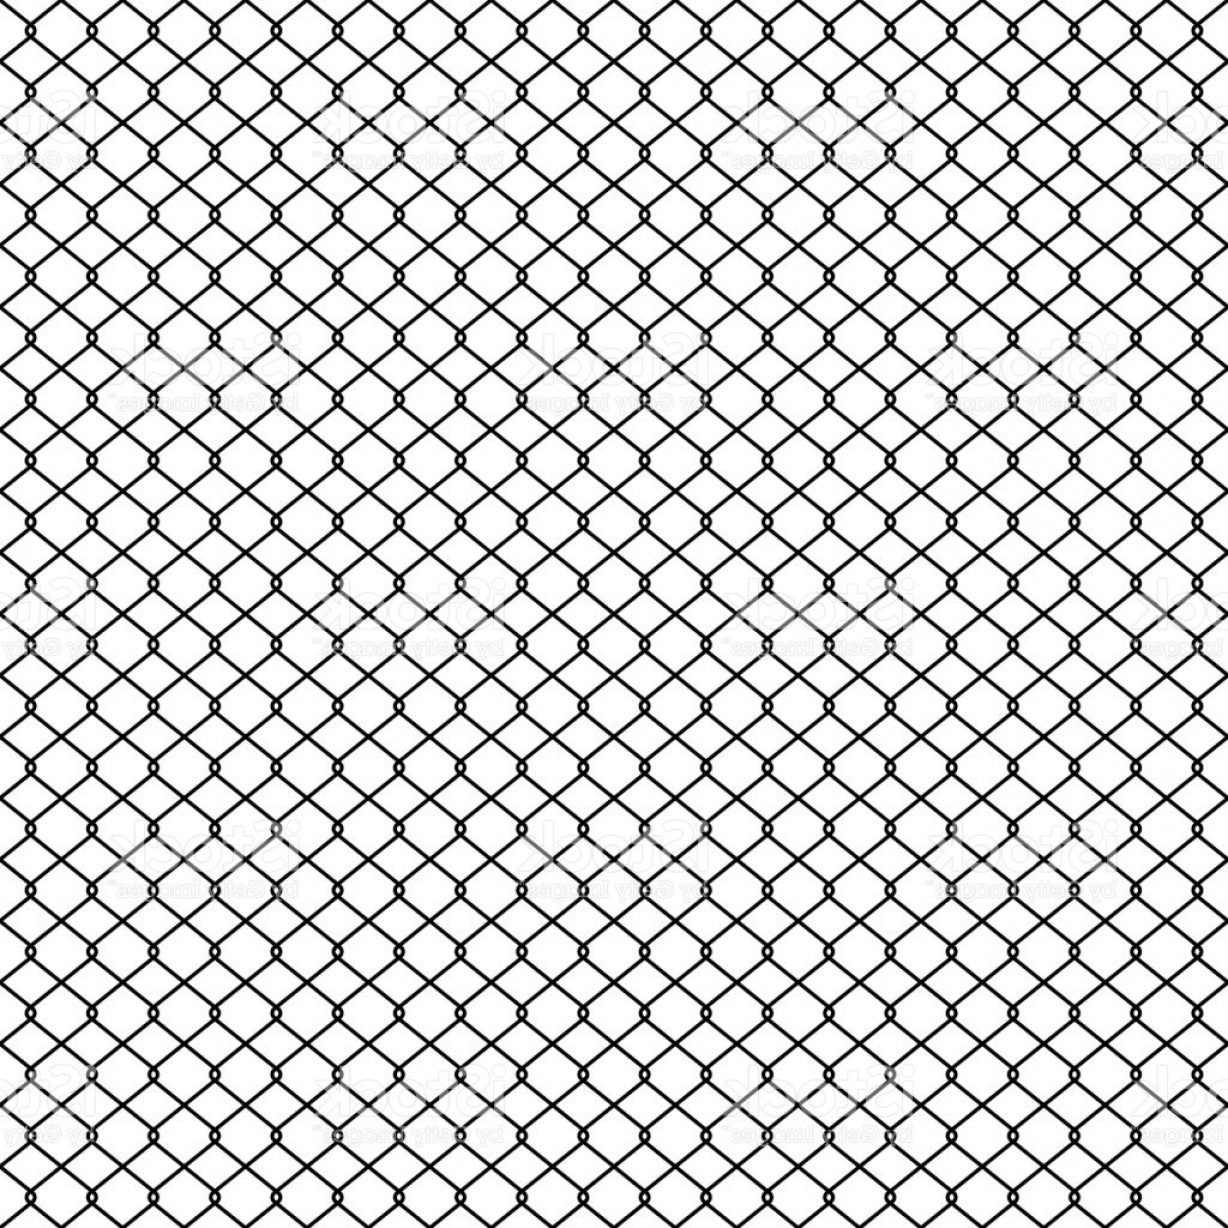 1228x1228 Wire Fence Transparent. Exellent Fence Wire Fence Transparent